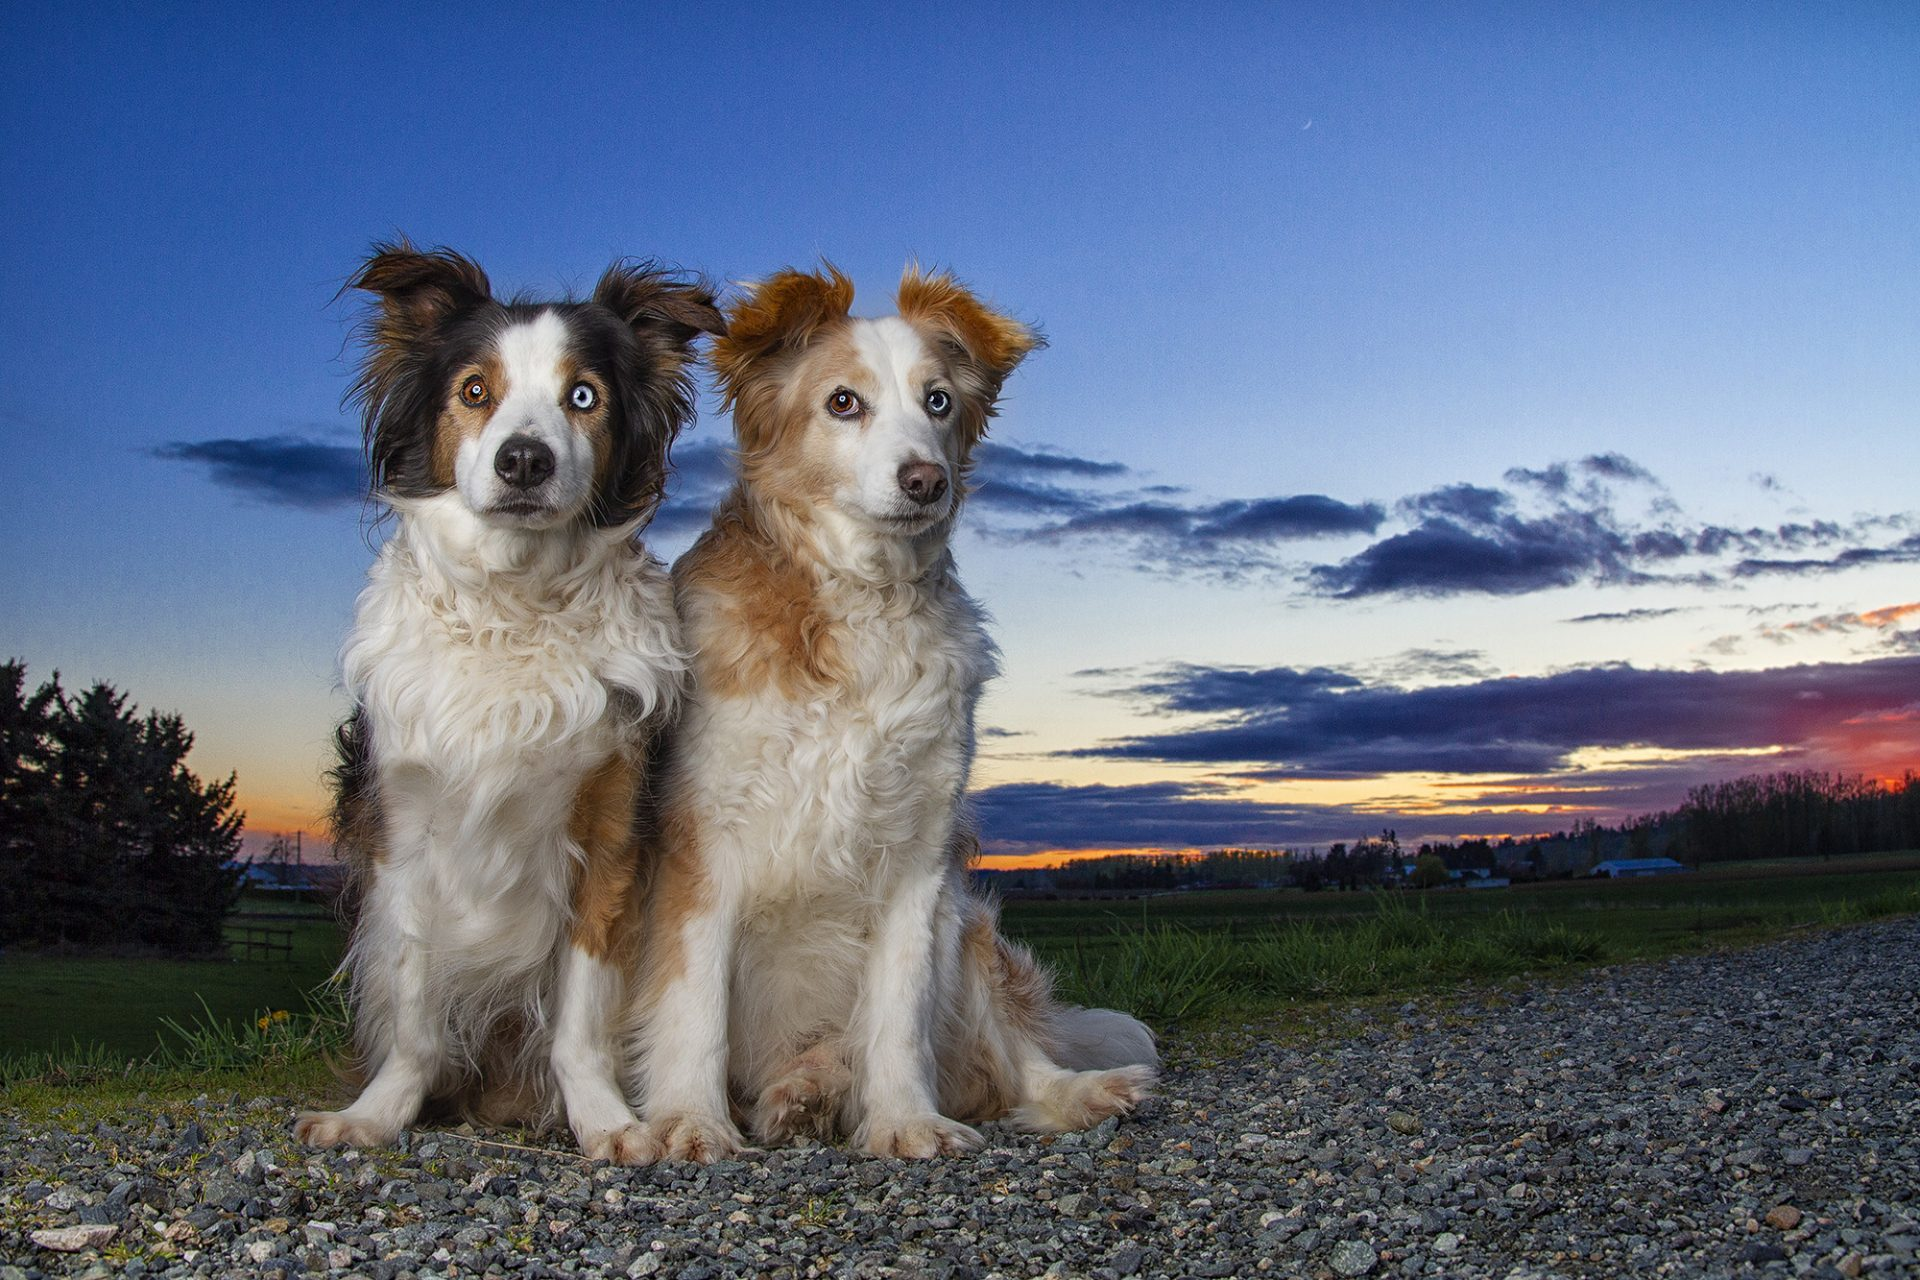 Australian Shepherd dogs in beautiful sunset